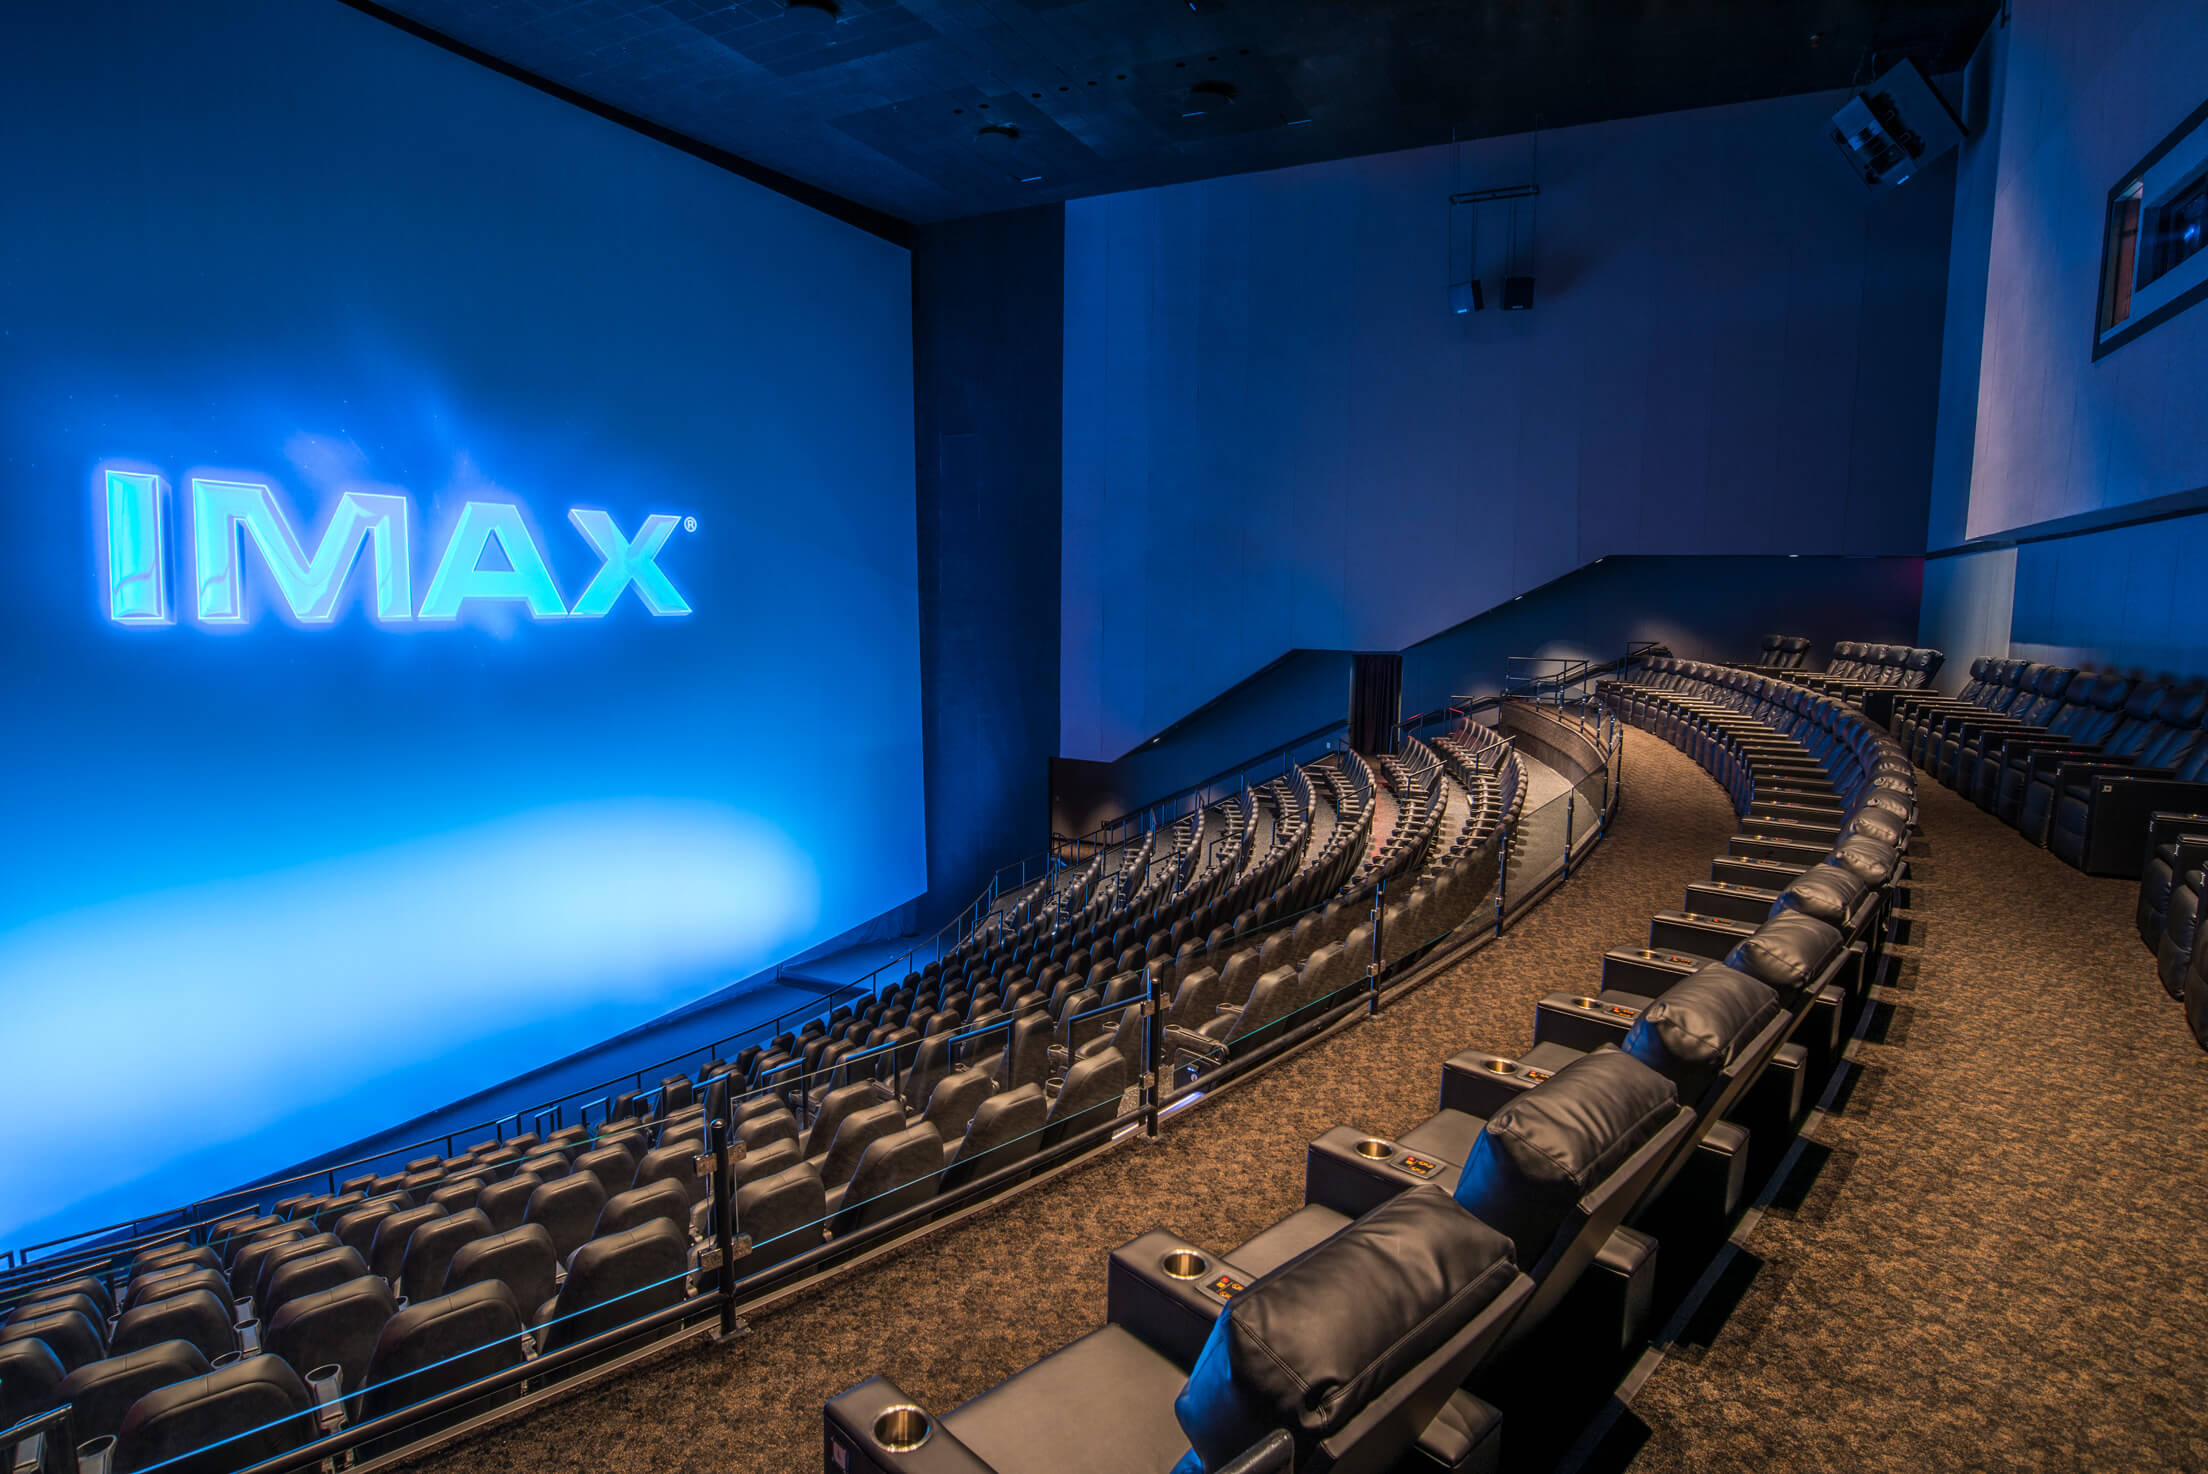 inside the Branson IMAX theater